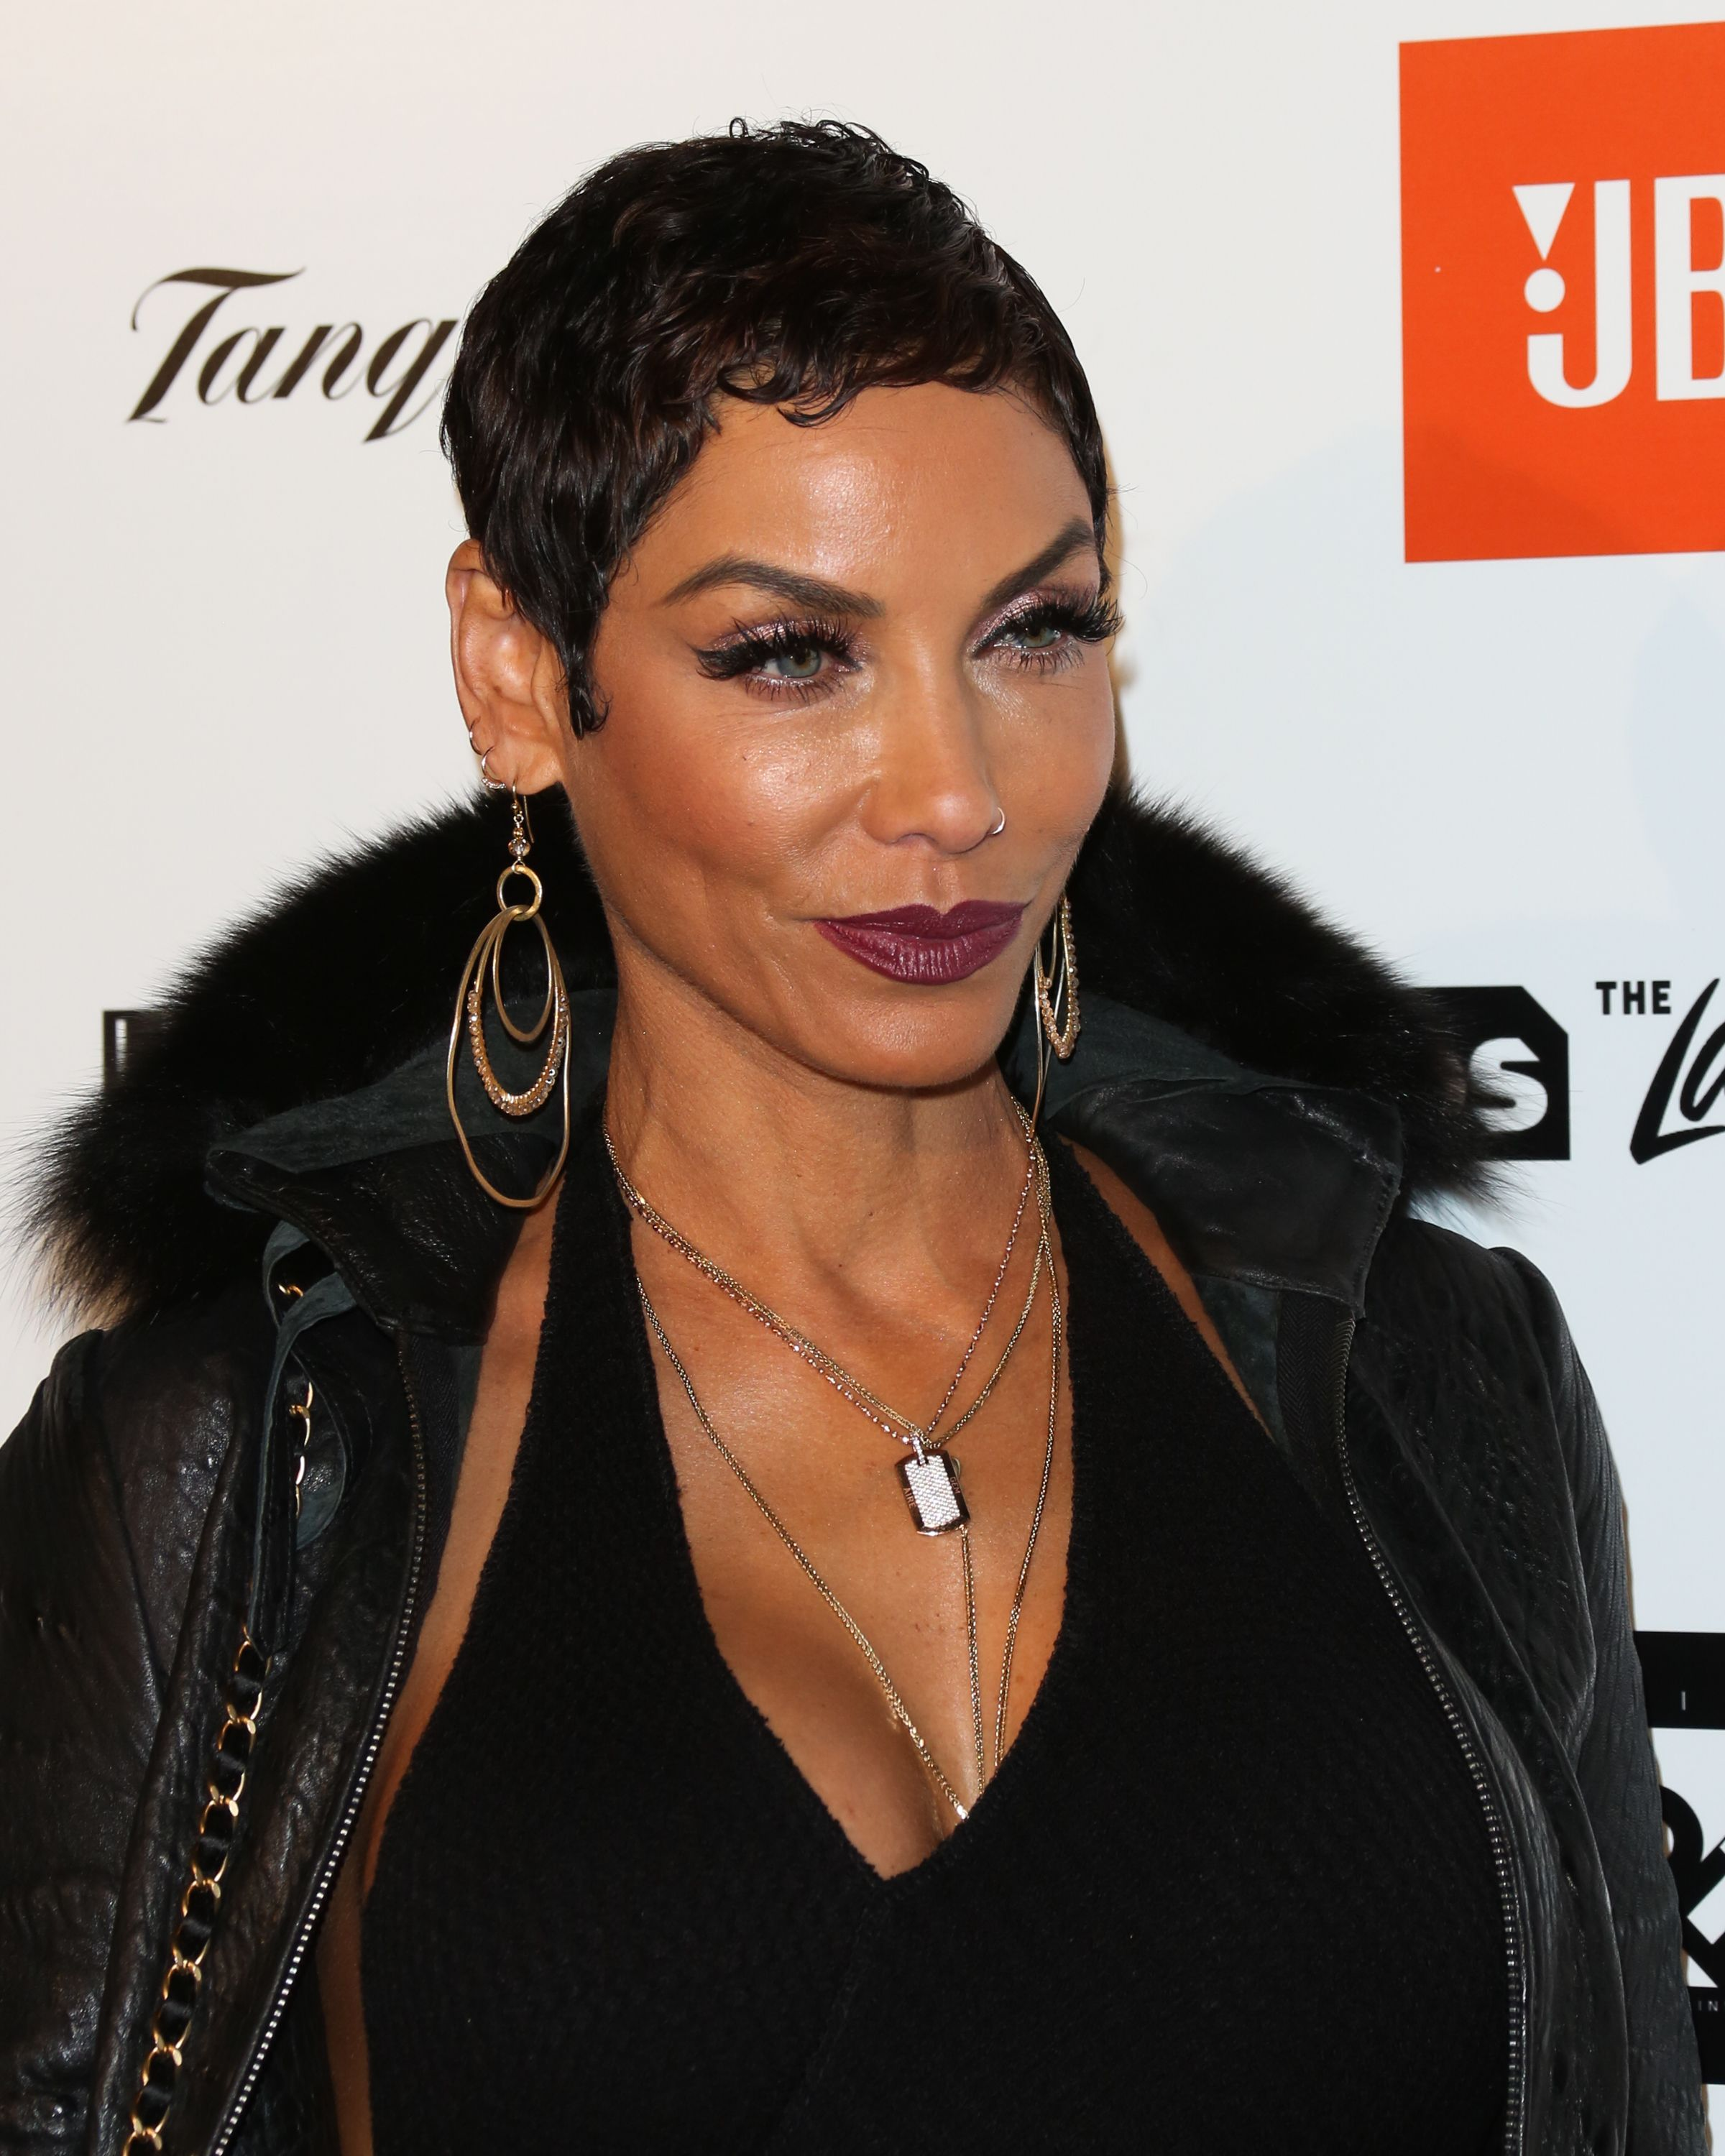 Nicole Murphy during Kenny 'The Jet' Smith's annual All-Star bash on February 16, 2018 in California.   Source: Getty Images